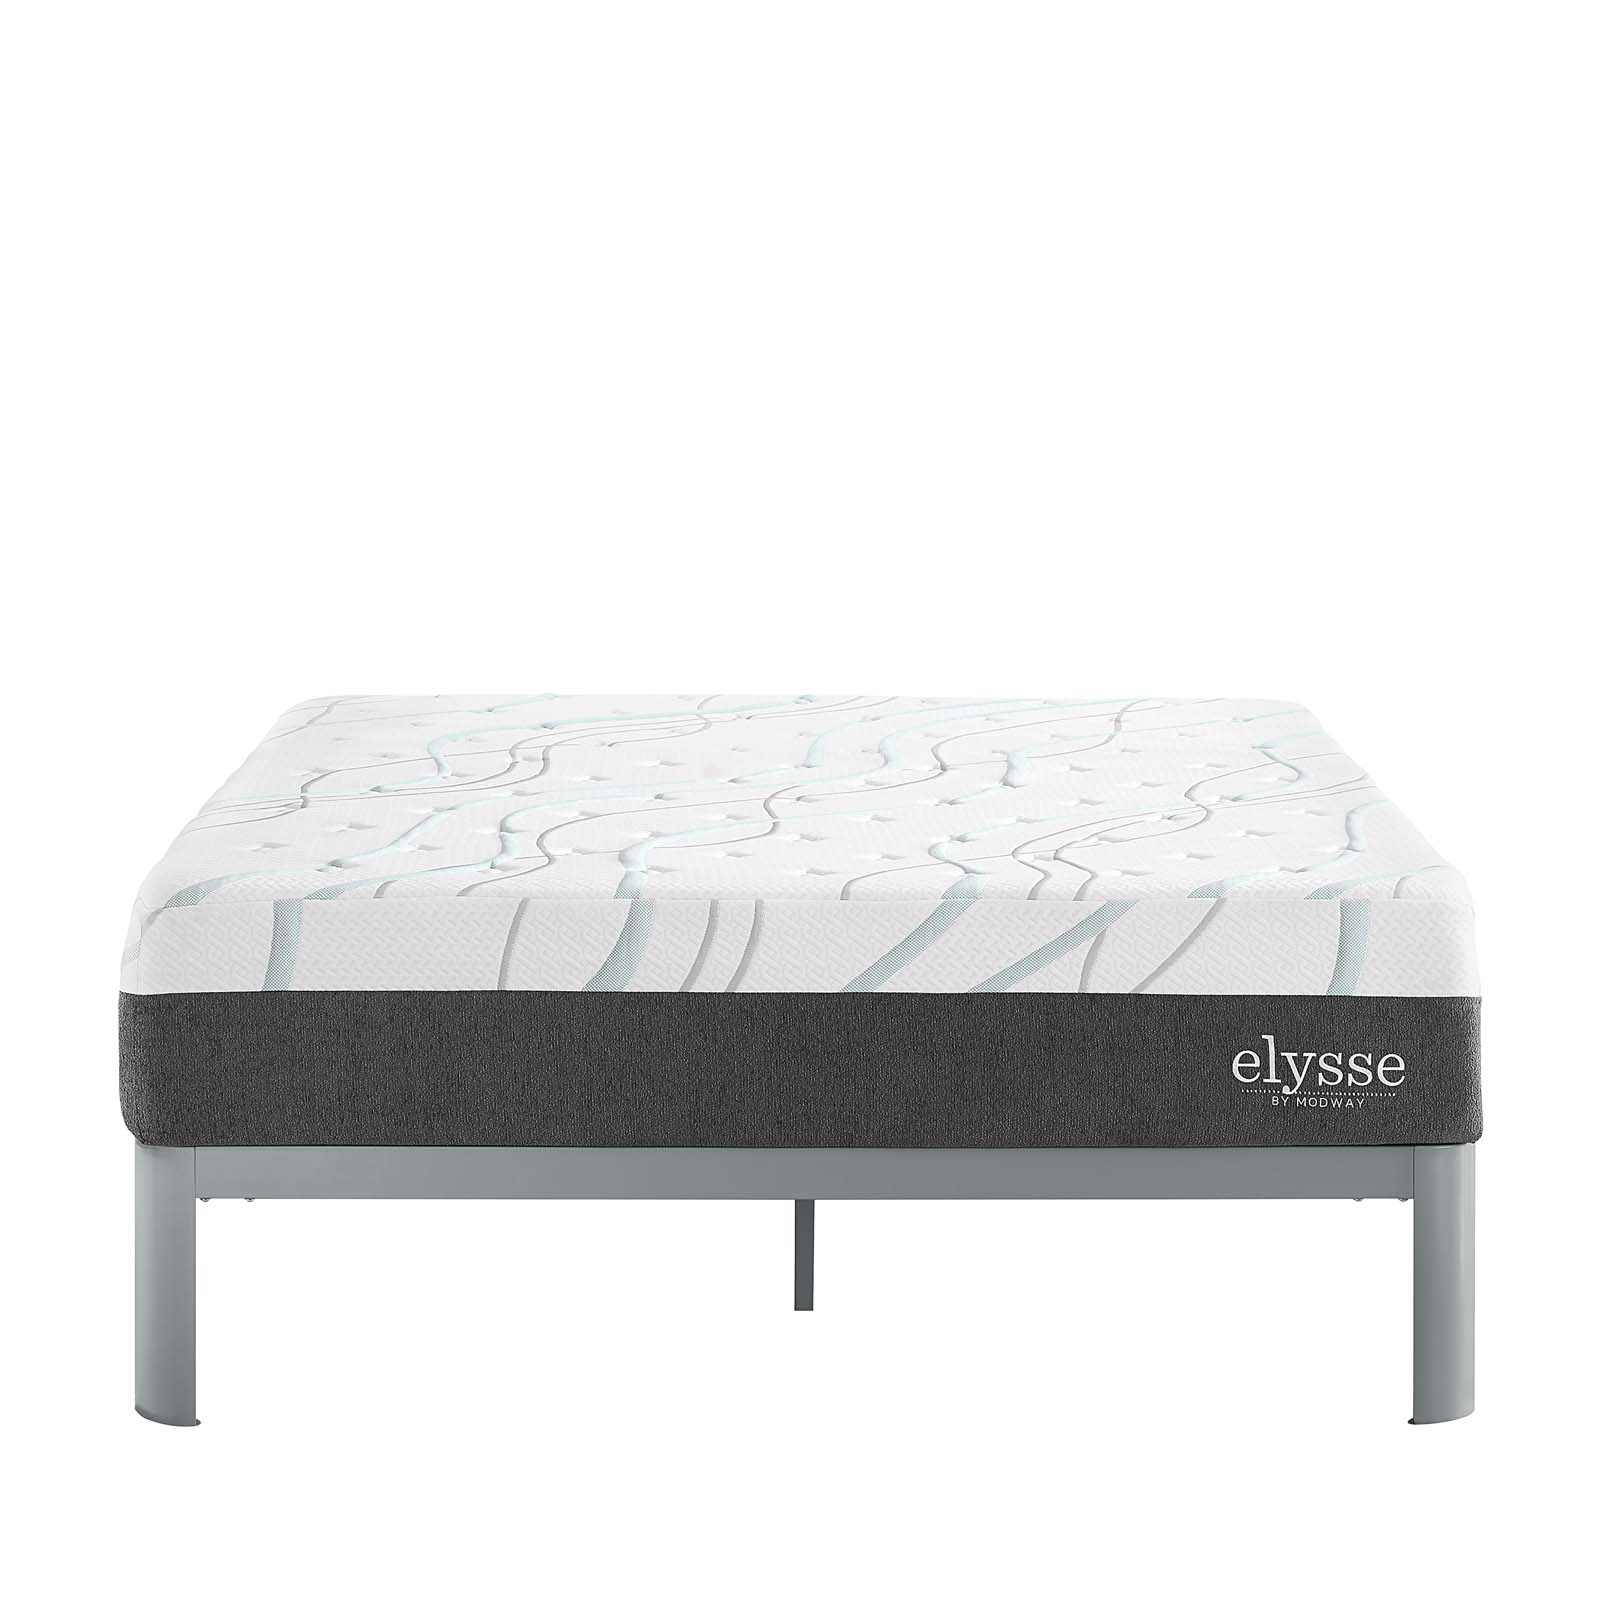 "Elysse Full CertiPUR-US® Certified Foam 12"" Gel Infused Hybrid Mattress"